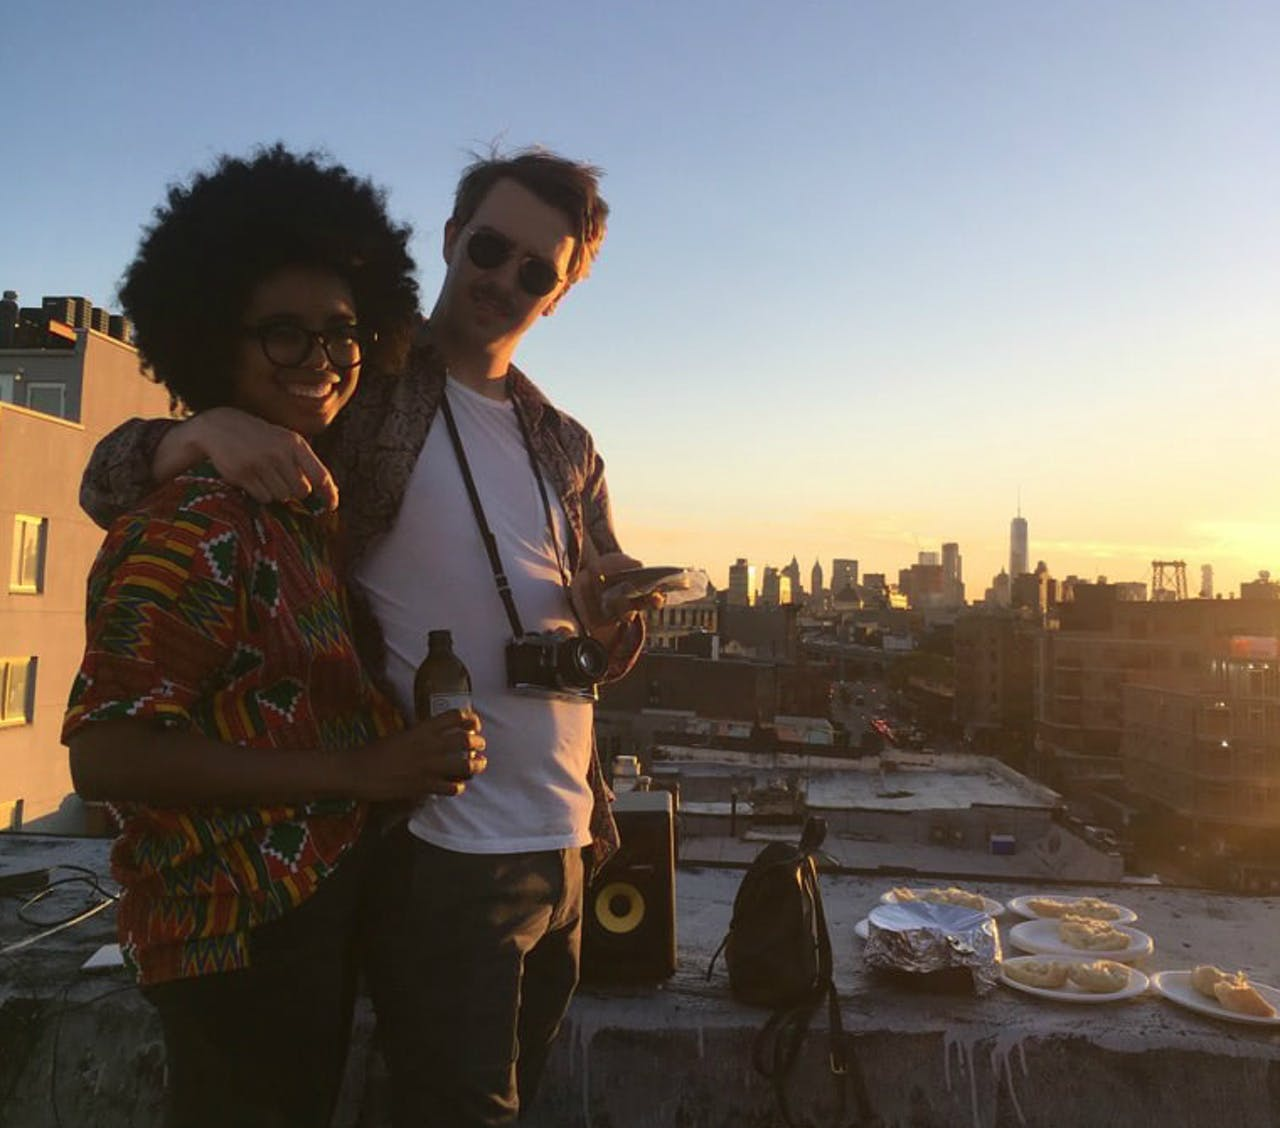 Best Unconventional NYC Date Ideas